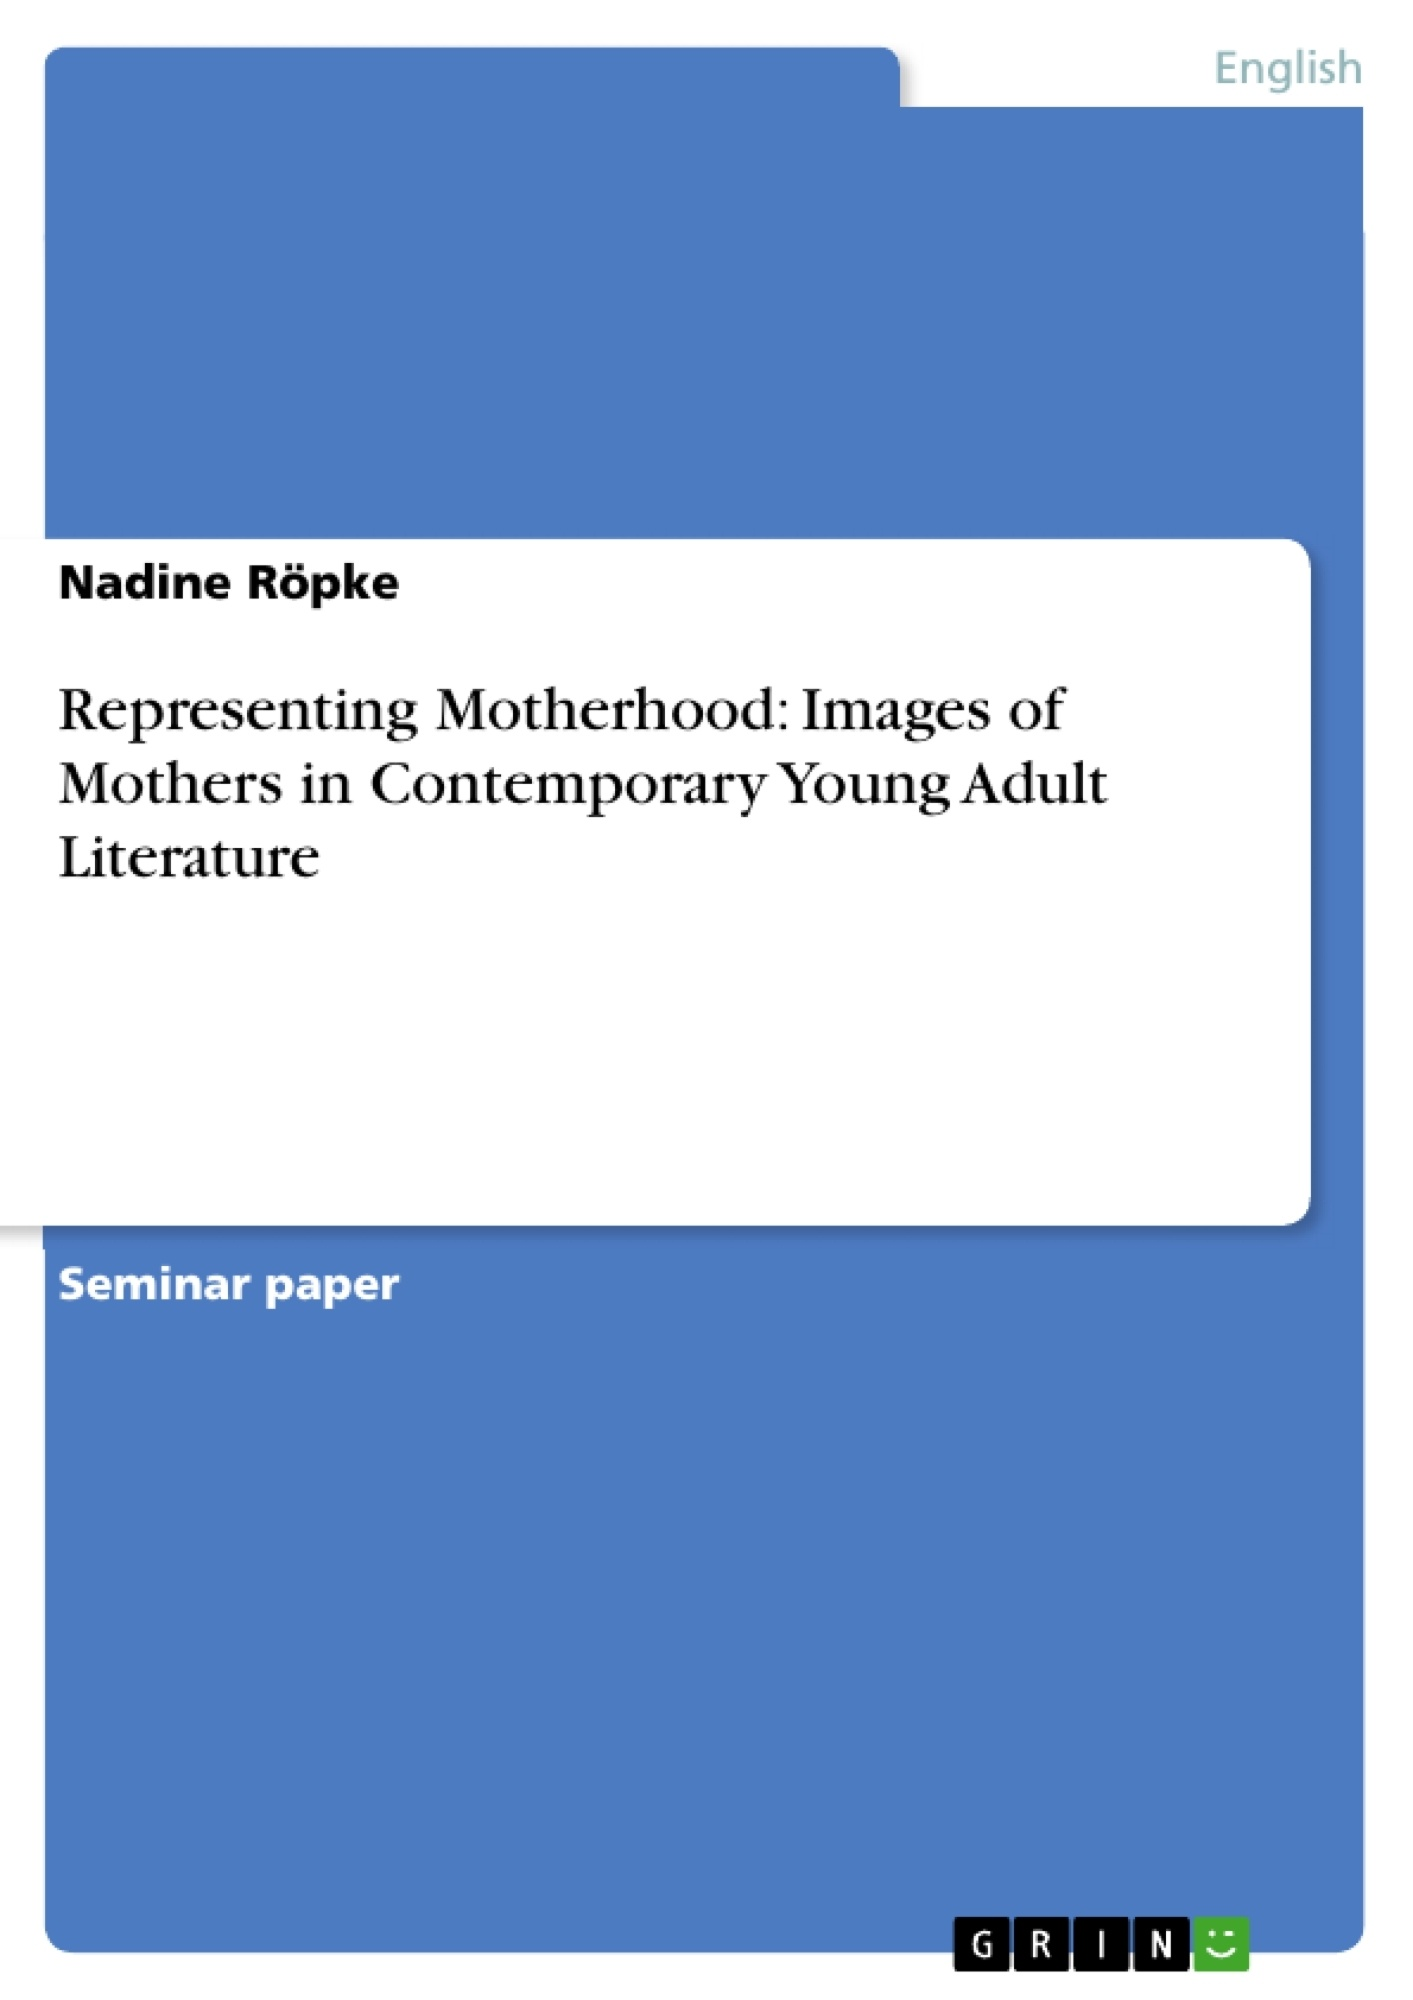 Title: Representing Motherhood: Images of Mothers in Contemporary Young Adult Literature